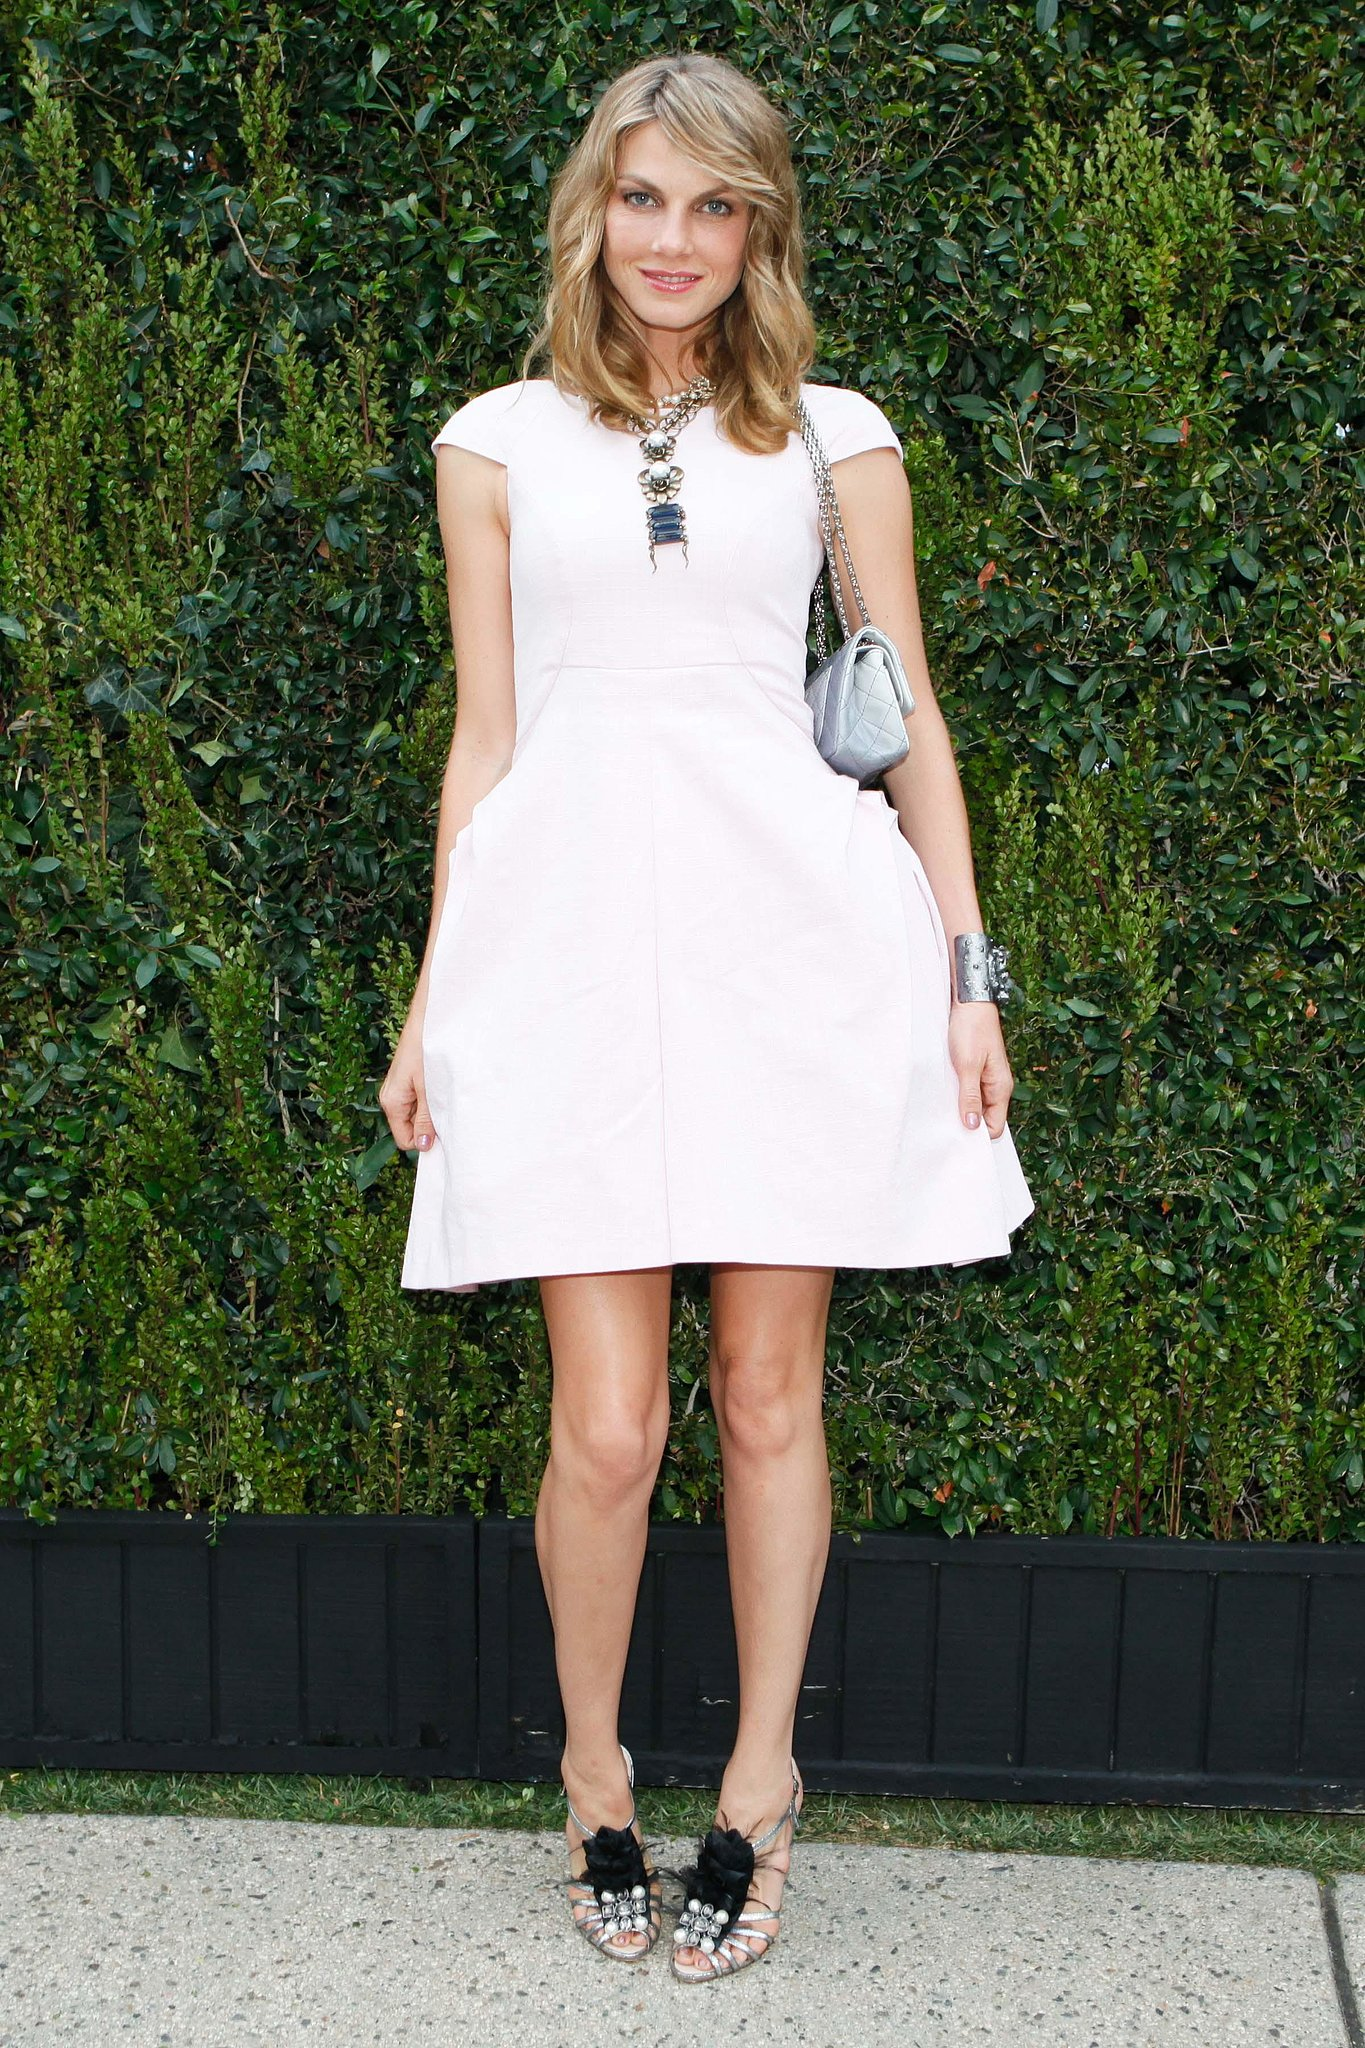 Angela Lindvall, in Chanel, at the Natural Resources Defense Council's A Celebration of Art, Nature, and Technology dinner, hosted by Chanel. Source: Koury Angelo/BFAnyc.com